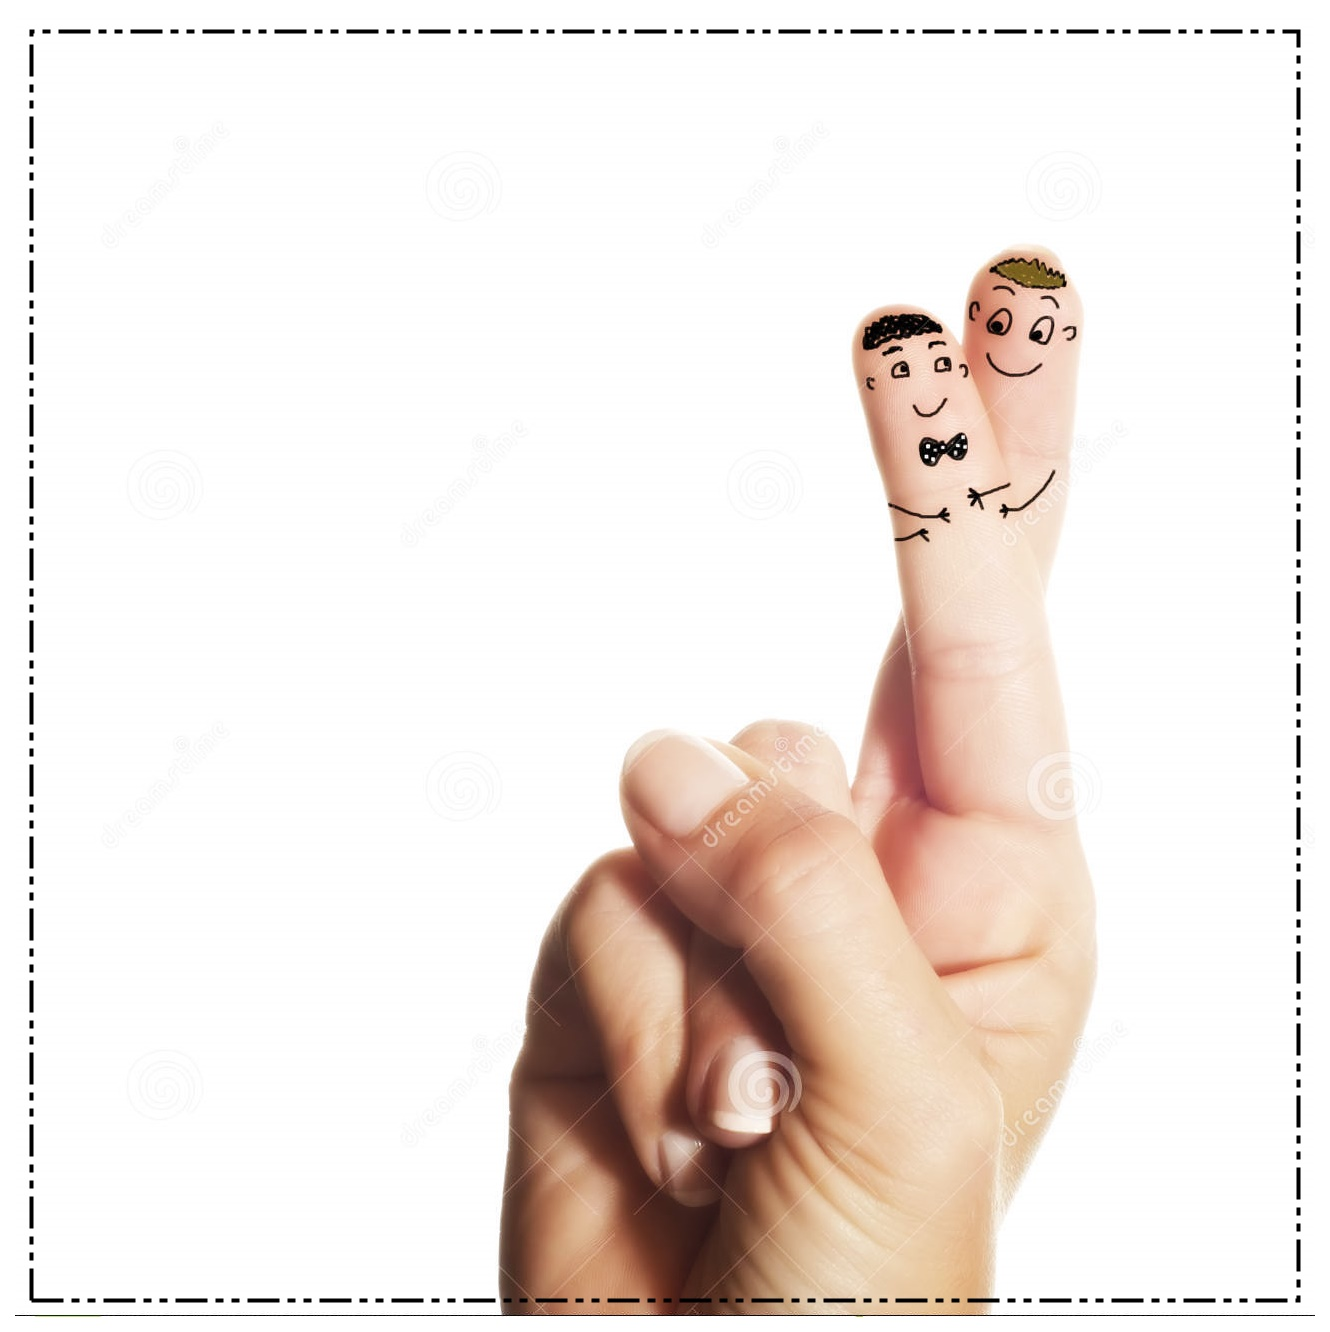 gay-couple-love-card-painted-fingers-isolated-white-background-64804405.jpg